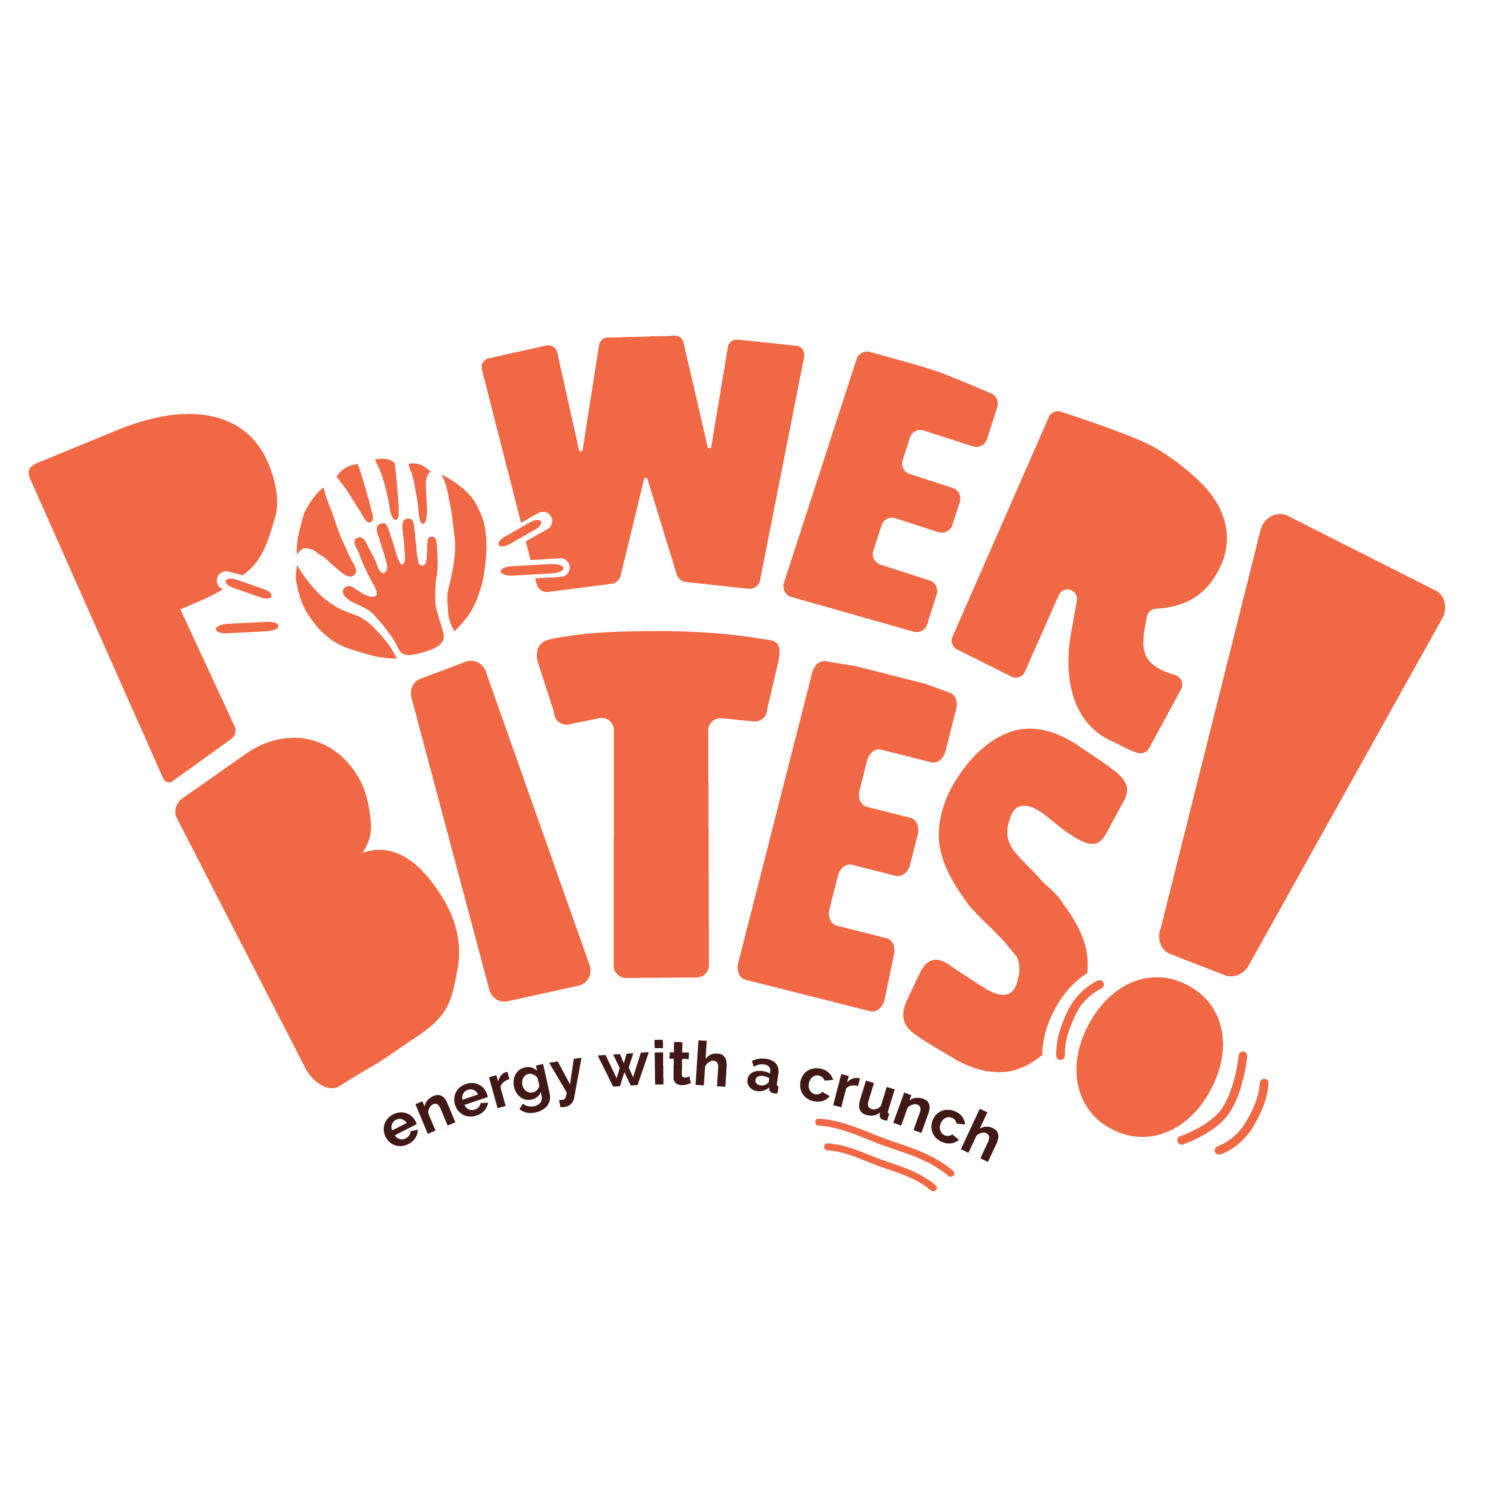 Power Bites